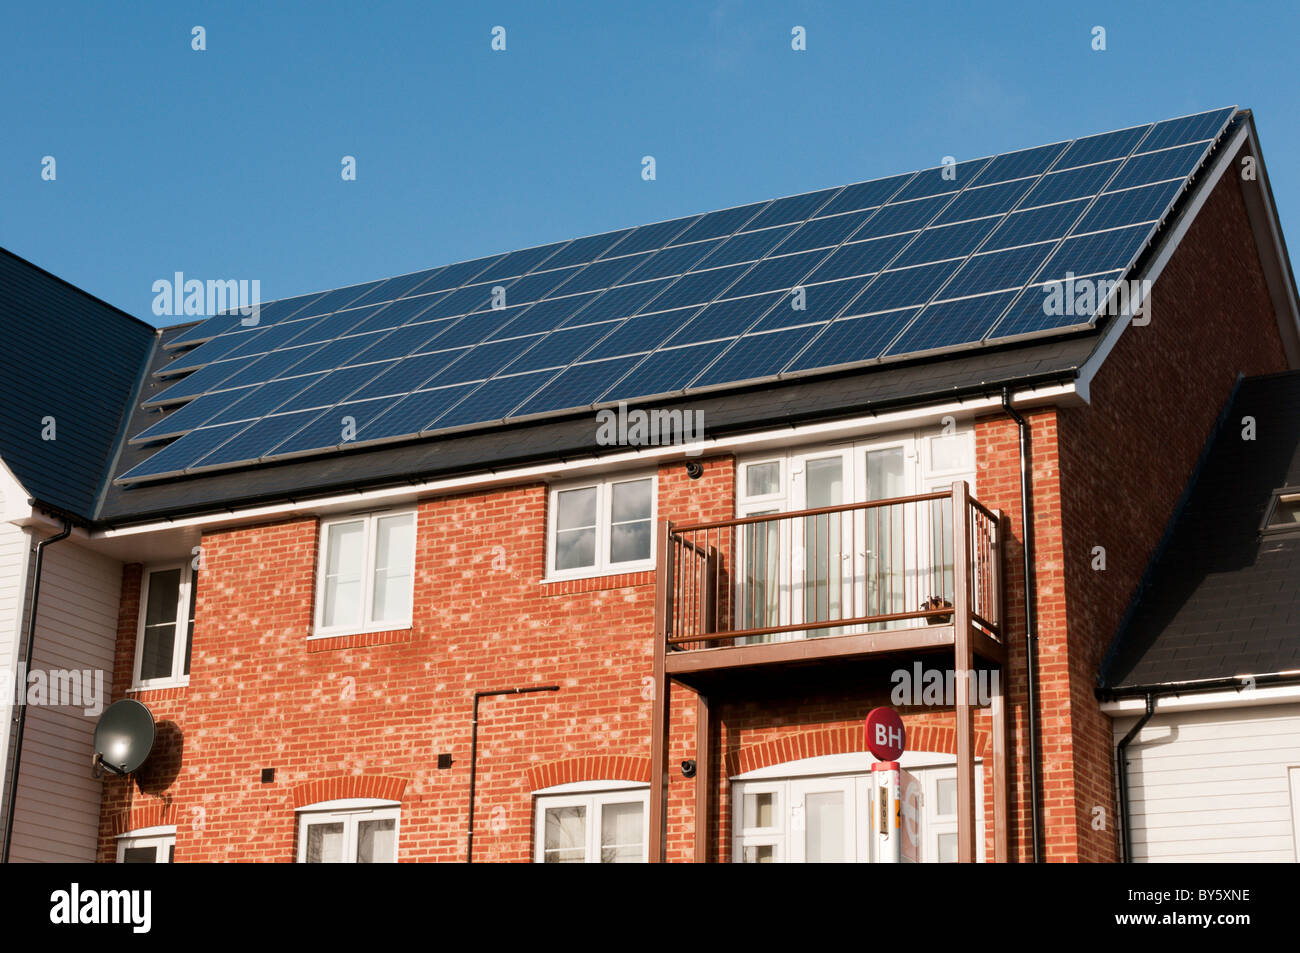 A renewable energy supply in the form of photovoltaic panels on the roof of a new development in Bromley, Kent, - Stock Image